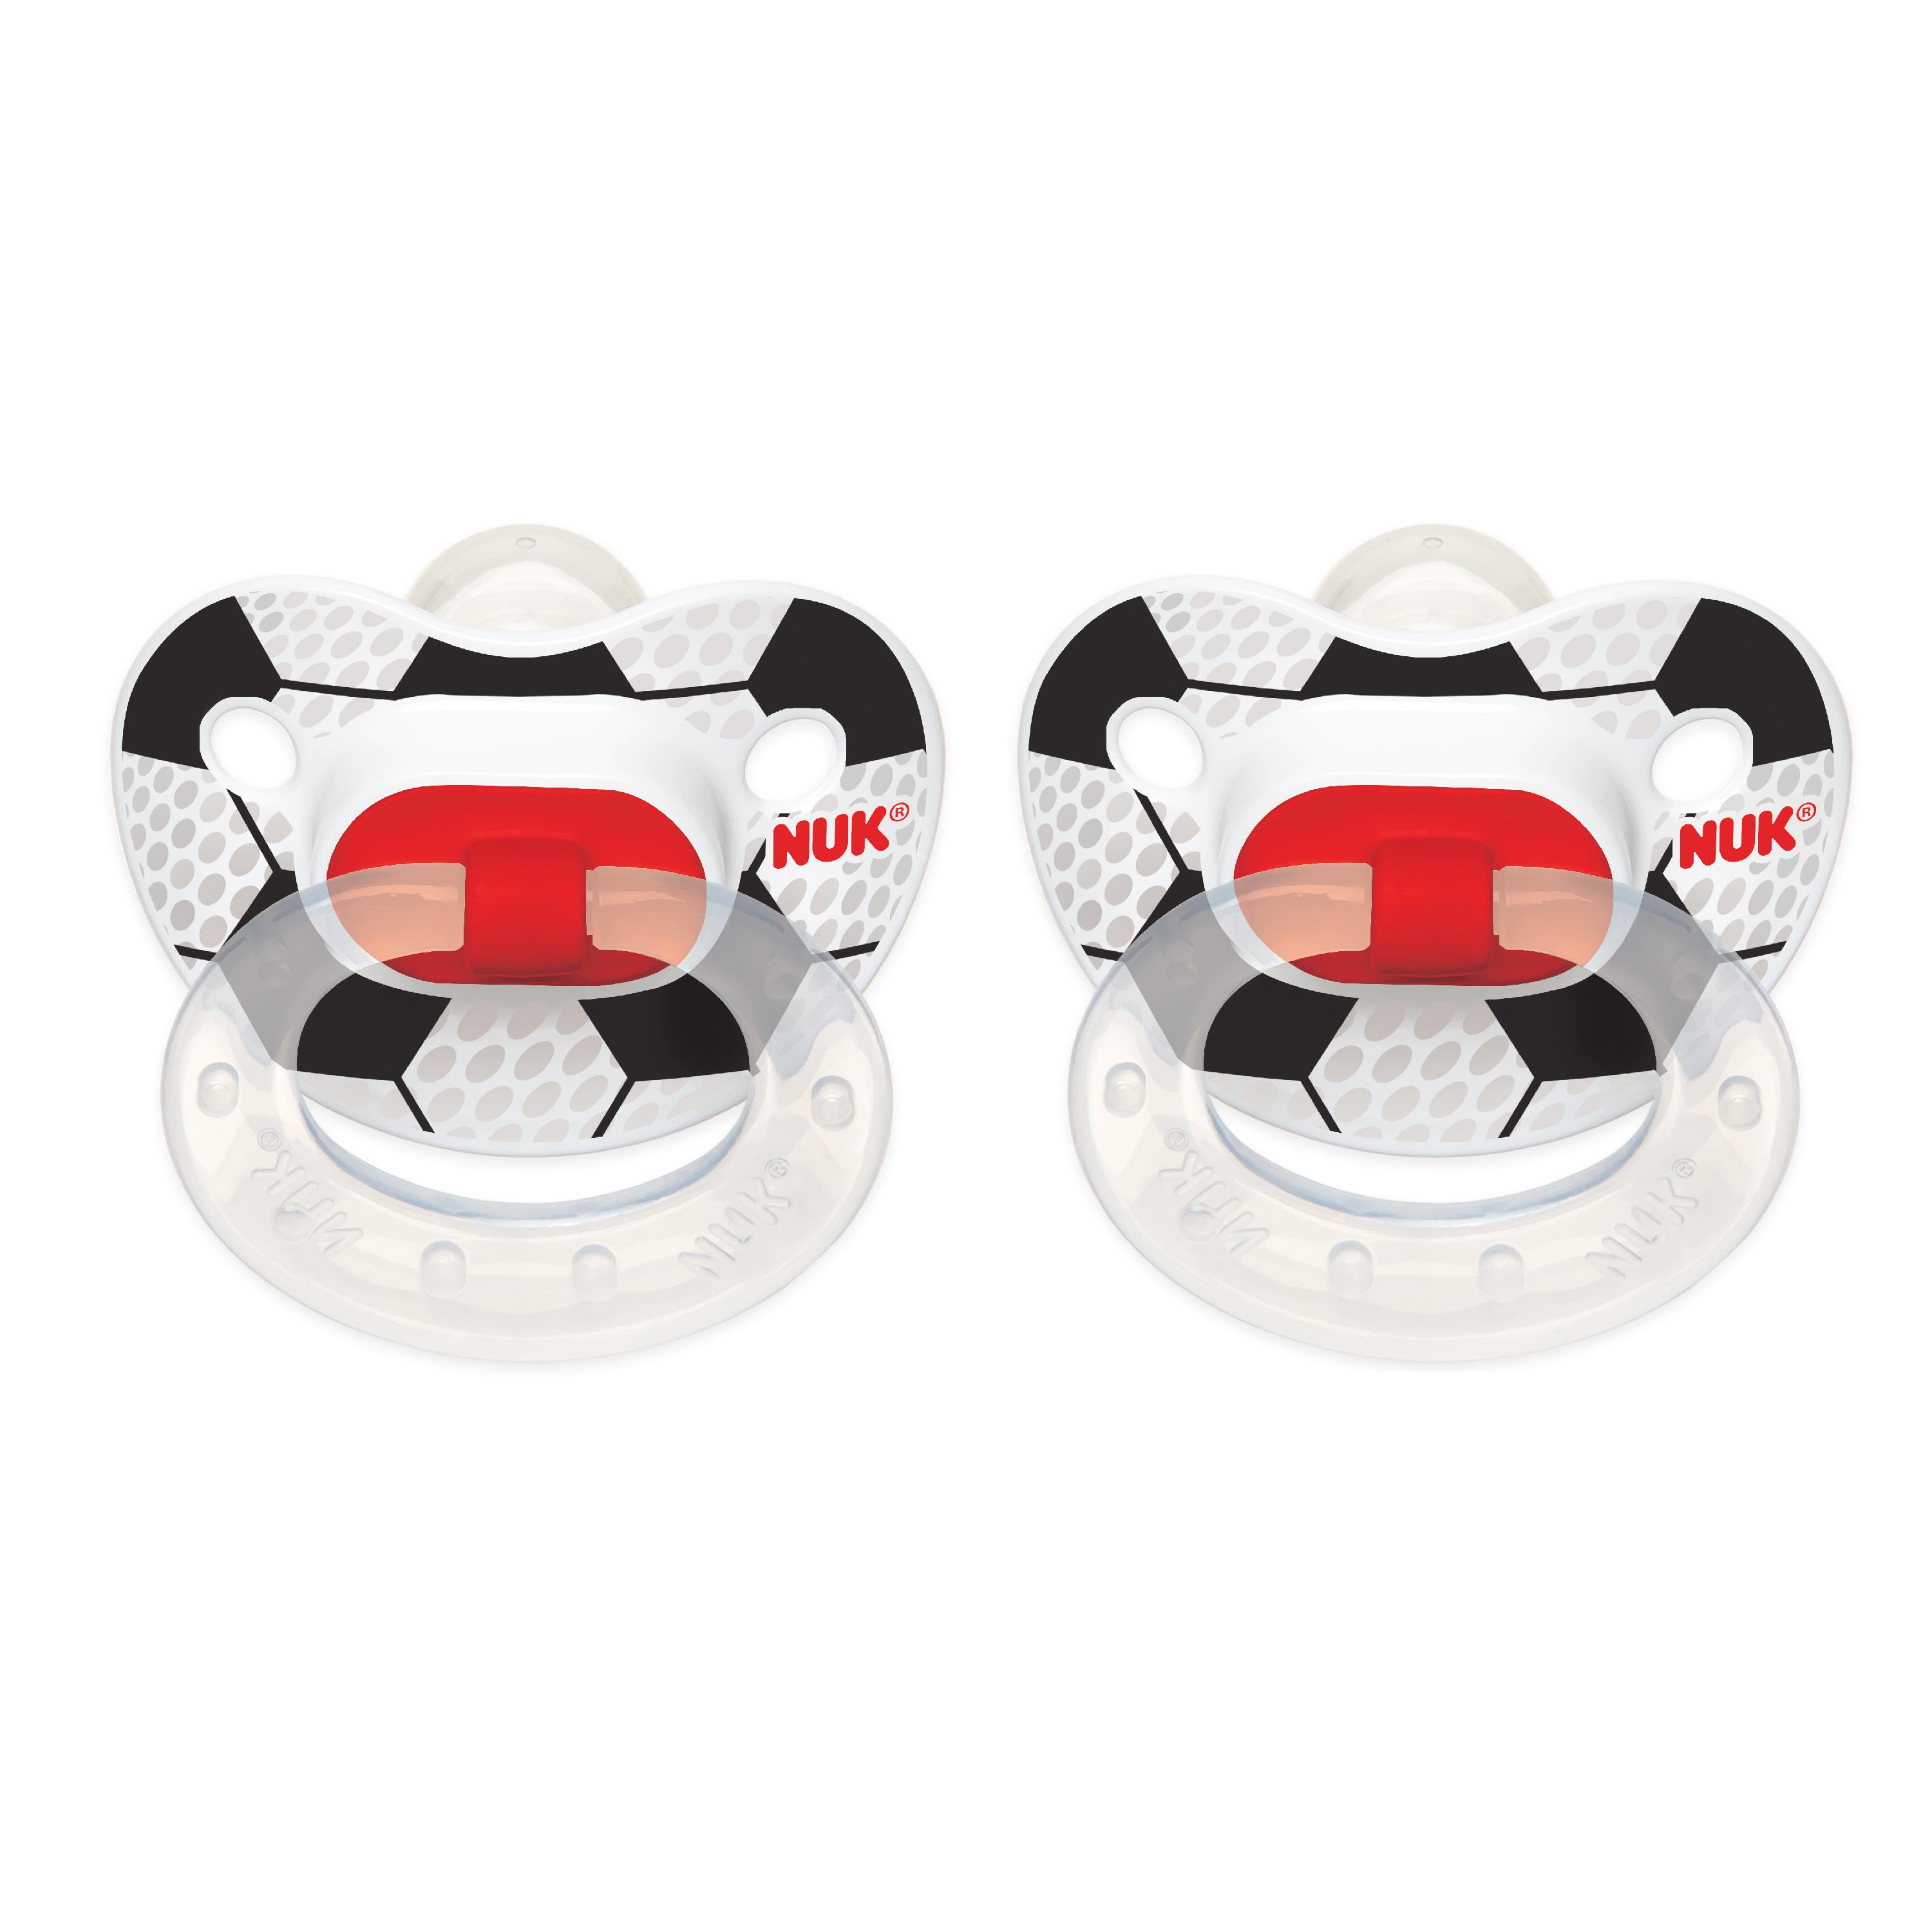 Nuk Orthodontic Pacifier 6-18M 8 CT by Nuk